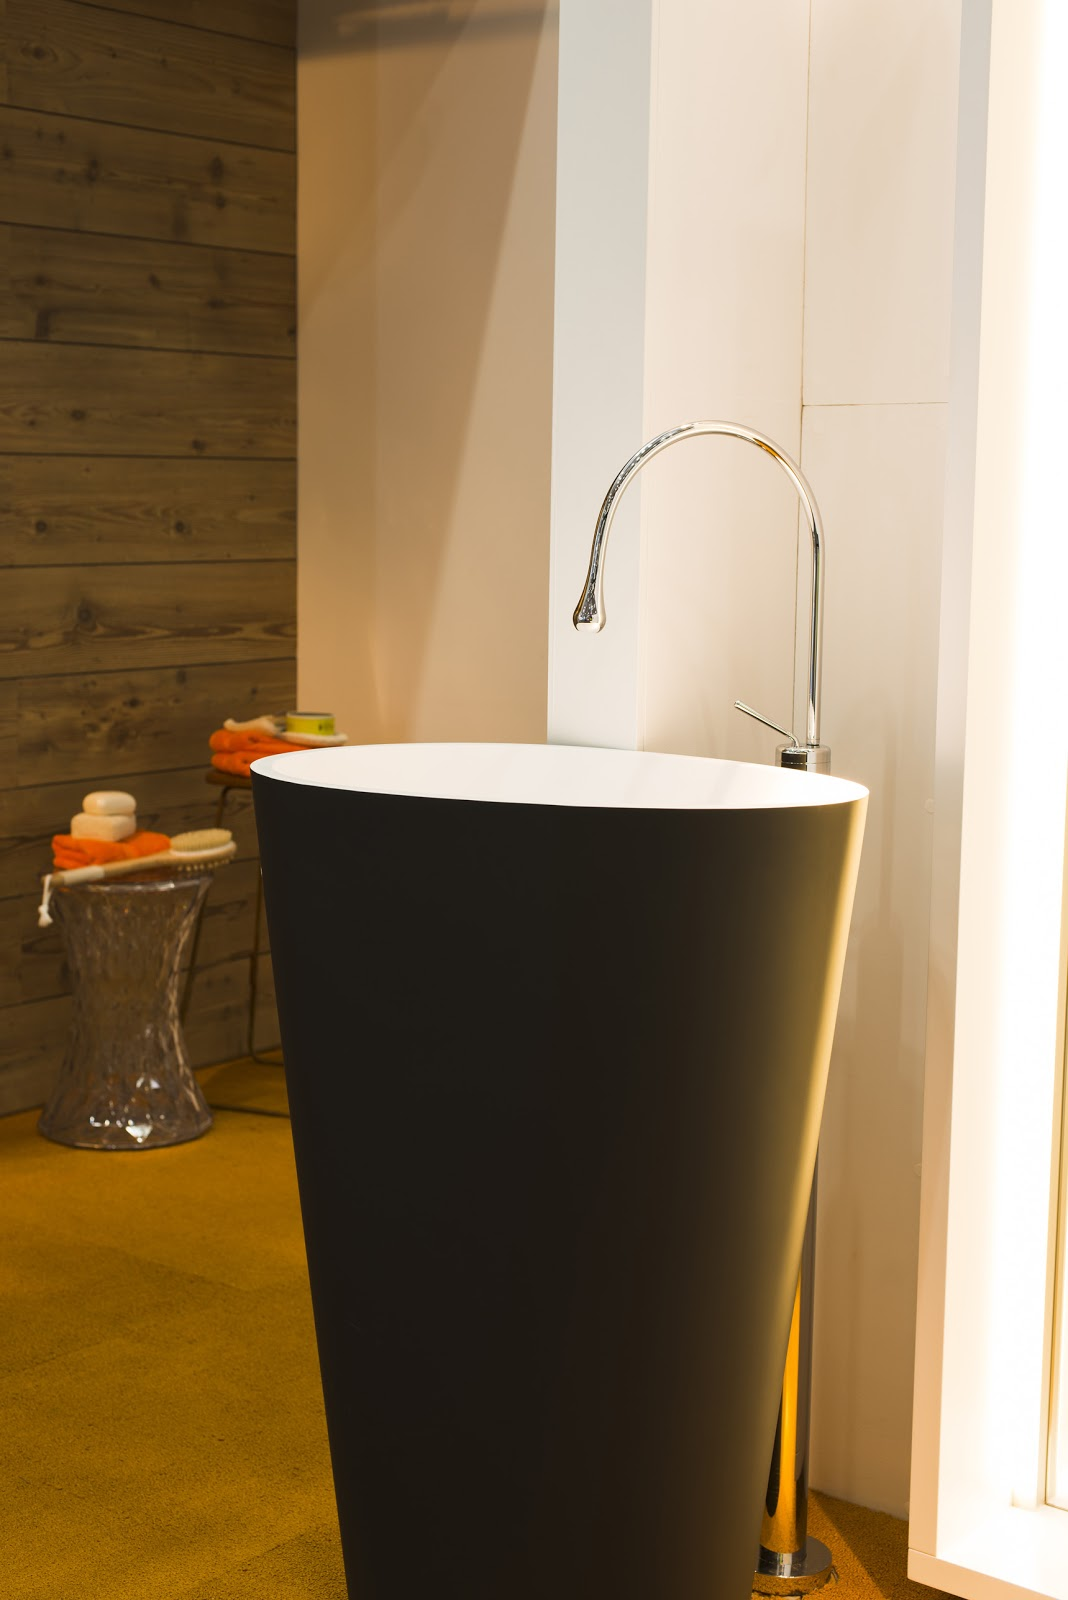 Minosa new minosa bathroom design resort style ensuite - Personal Vanity Overtakes The Bathroom Vanity As We Know It This Sophisticated Design Concept Includes The Use Of Oversized Mirrors And Led Lights